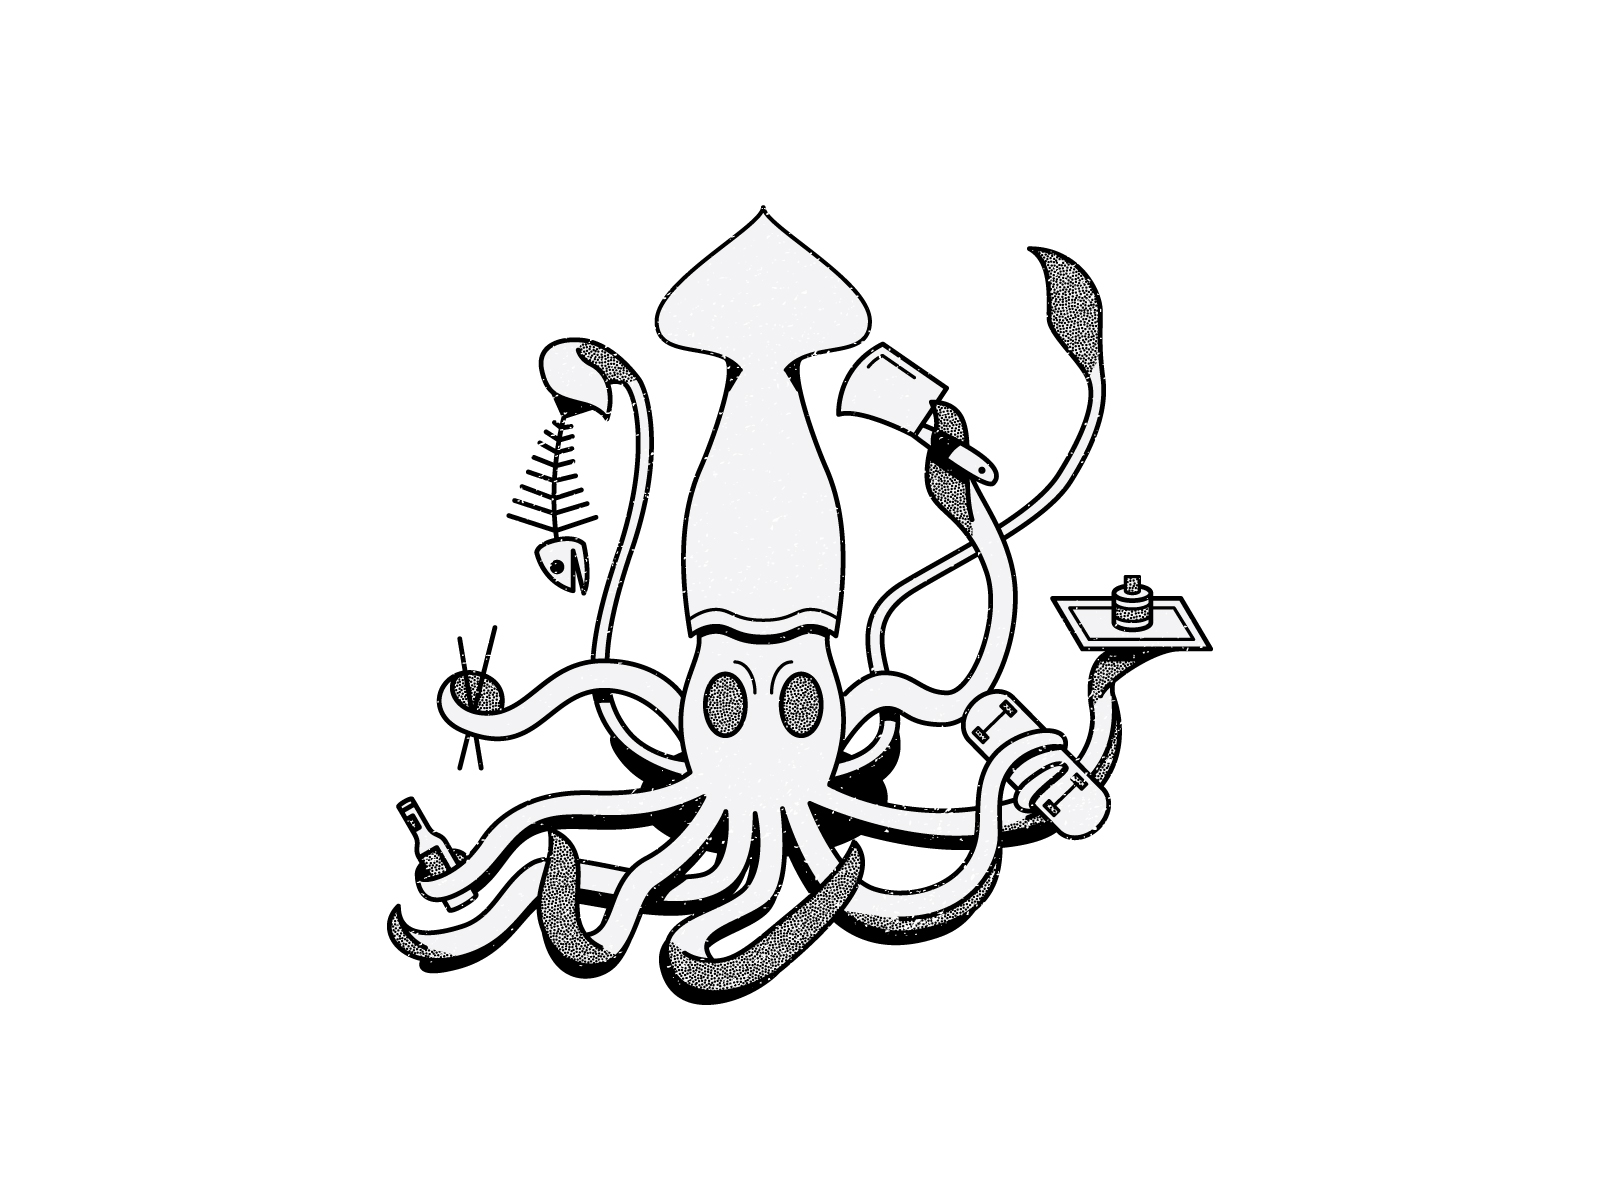 """Squid - At one stage I wanted to create a skate brand around sushi. This was an illustration I created for the """"brand."""""""